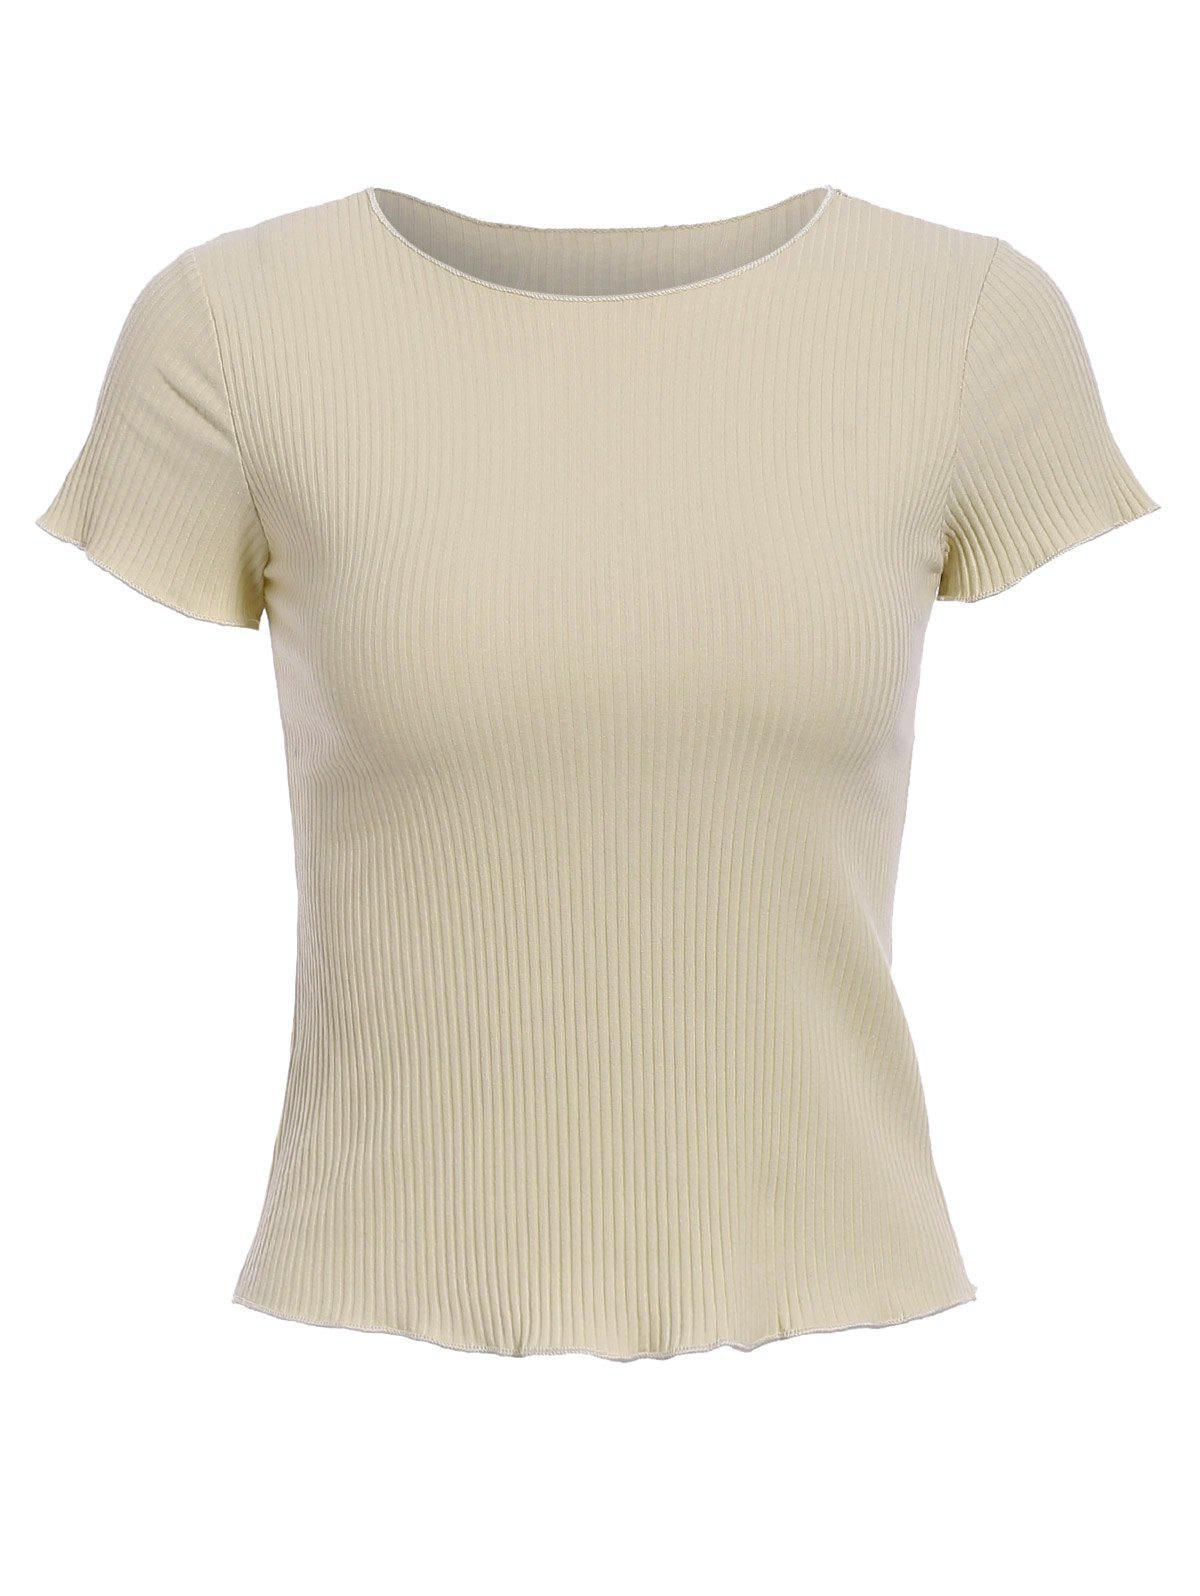 Stylish Women's Round Neck Short Sleeve Ribbed Crop Top - APRICOT ONE SIZE(FIT SIZE XS TO M)